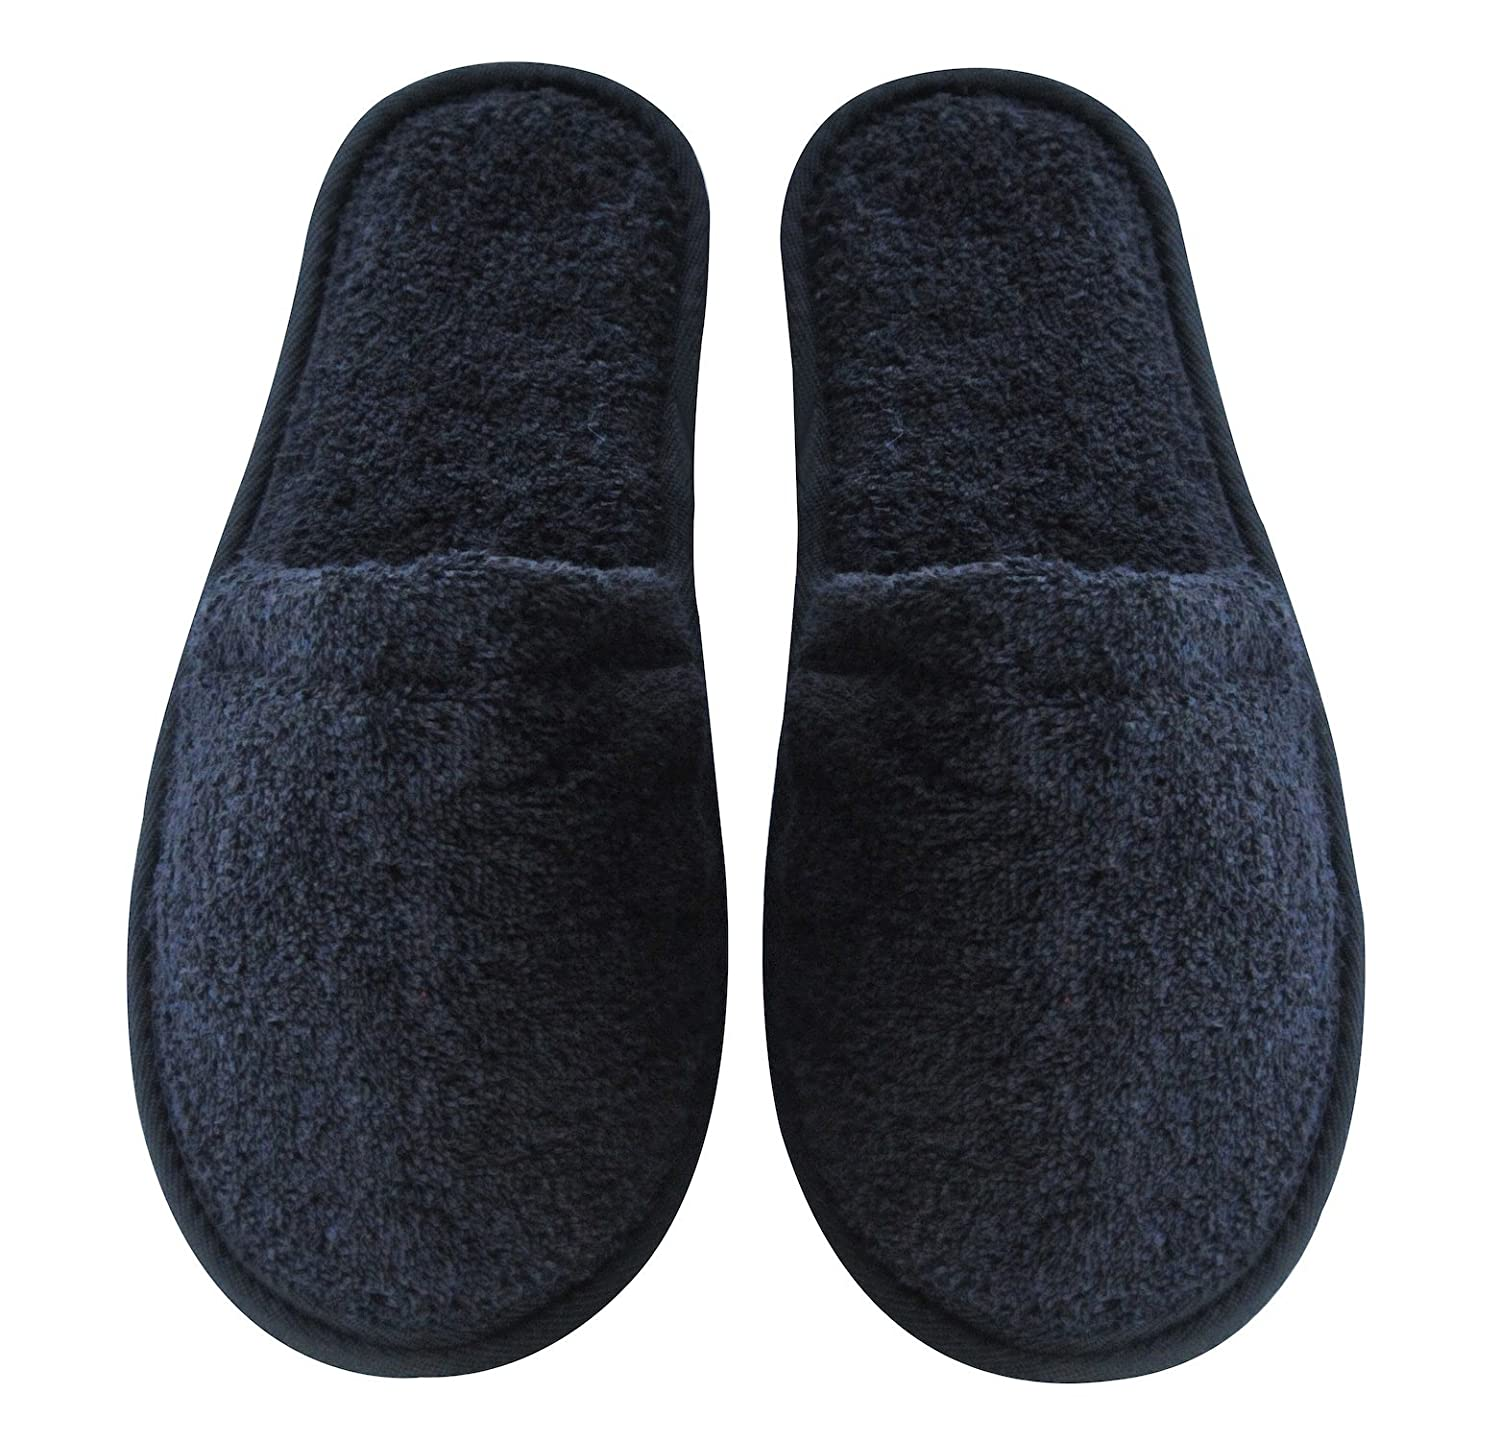 sweaty mens slippers spring amazonin slipper clearance kmart ugg bedroom at adidas for home walmart india online duramo best in fuzzy flipflops shoes men apartment and feet dress slide habitat low summer house target prices leather womens toddler